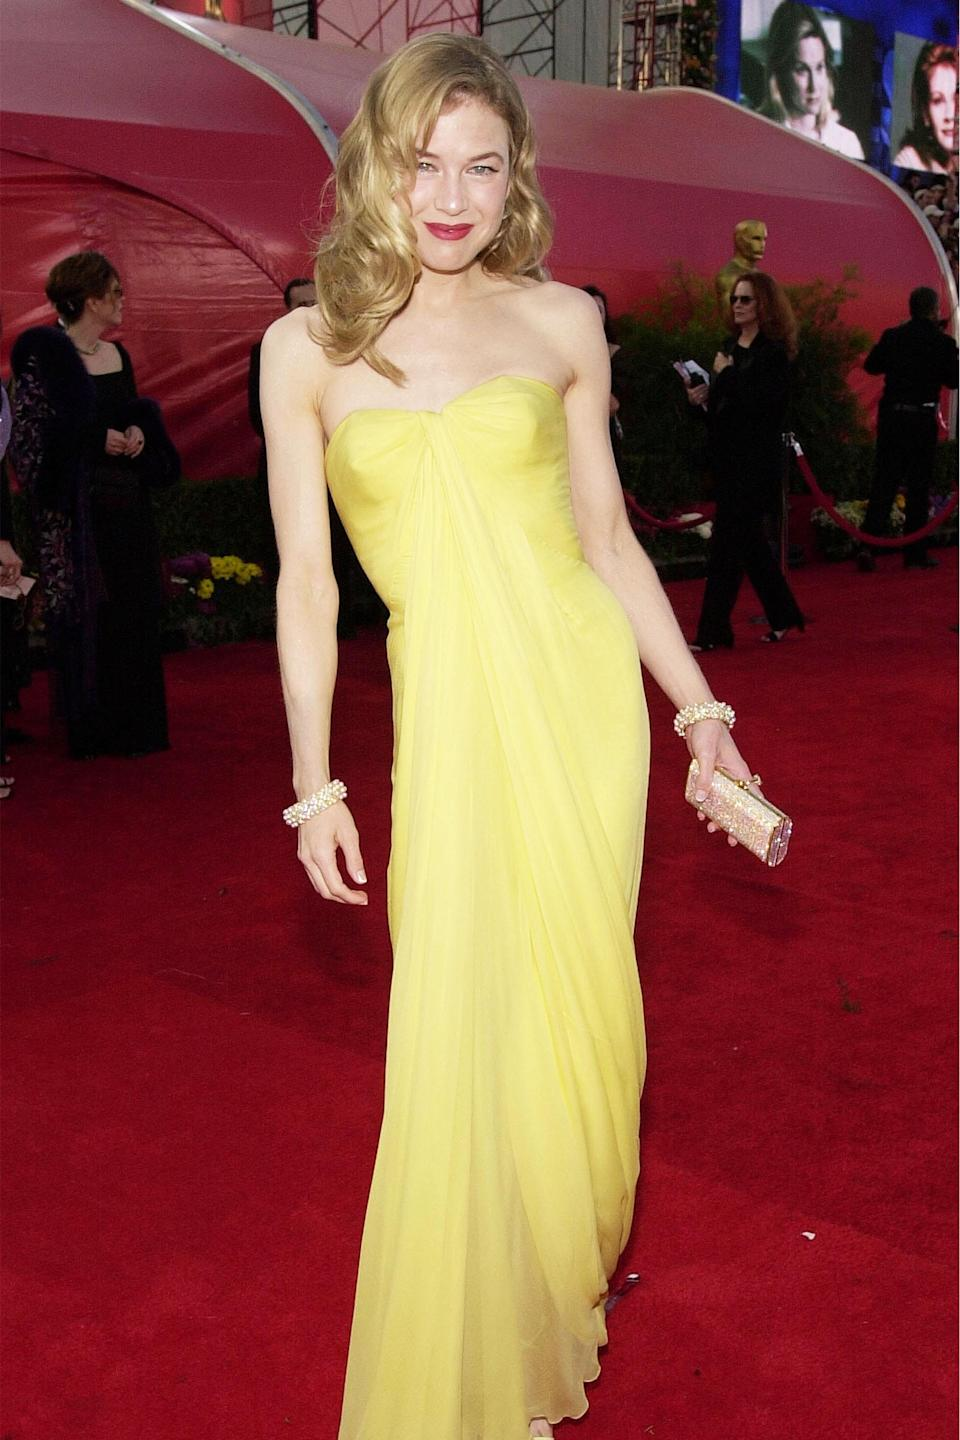 """<h2>Renée Zellweger, 2001</h2><br>A long way from donning PJs all day and micro-minis at work in her role as Bridget Jones, Renée Zellweger classed up for the red carpet in a vintage yellow frock by Jean Dresses.<br><br><em>Renée Zellweger in a vintage dress by Jean Dresses.</em><span class=""""copyright"""">Photo: Chris Weeks/Getty Images. </span>"""